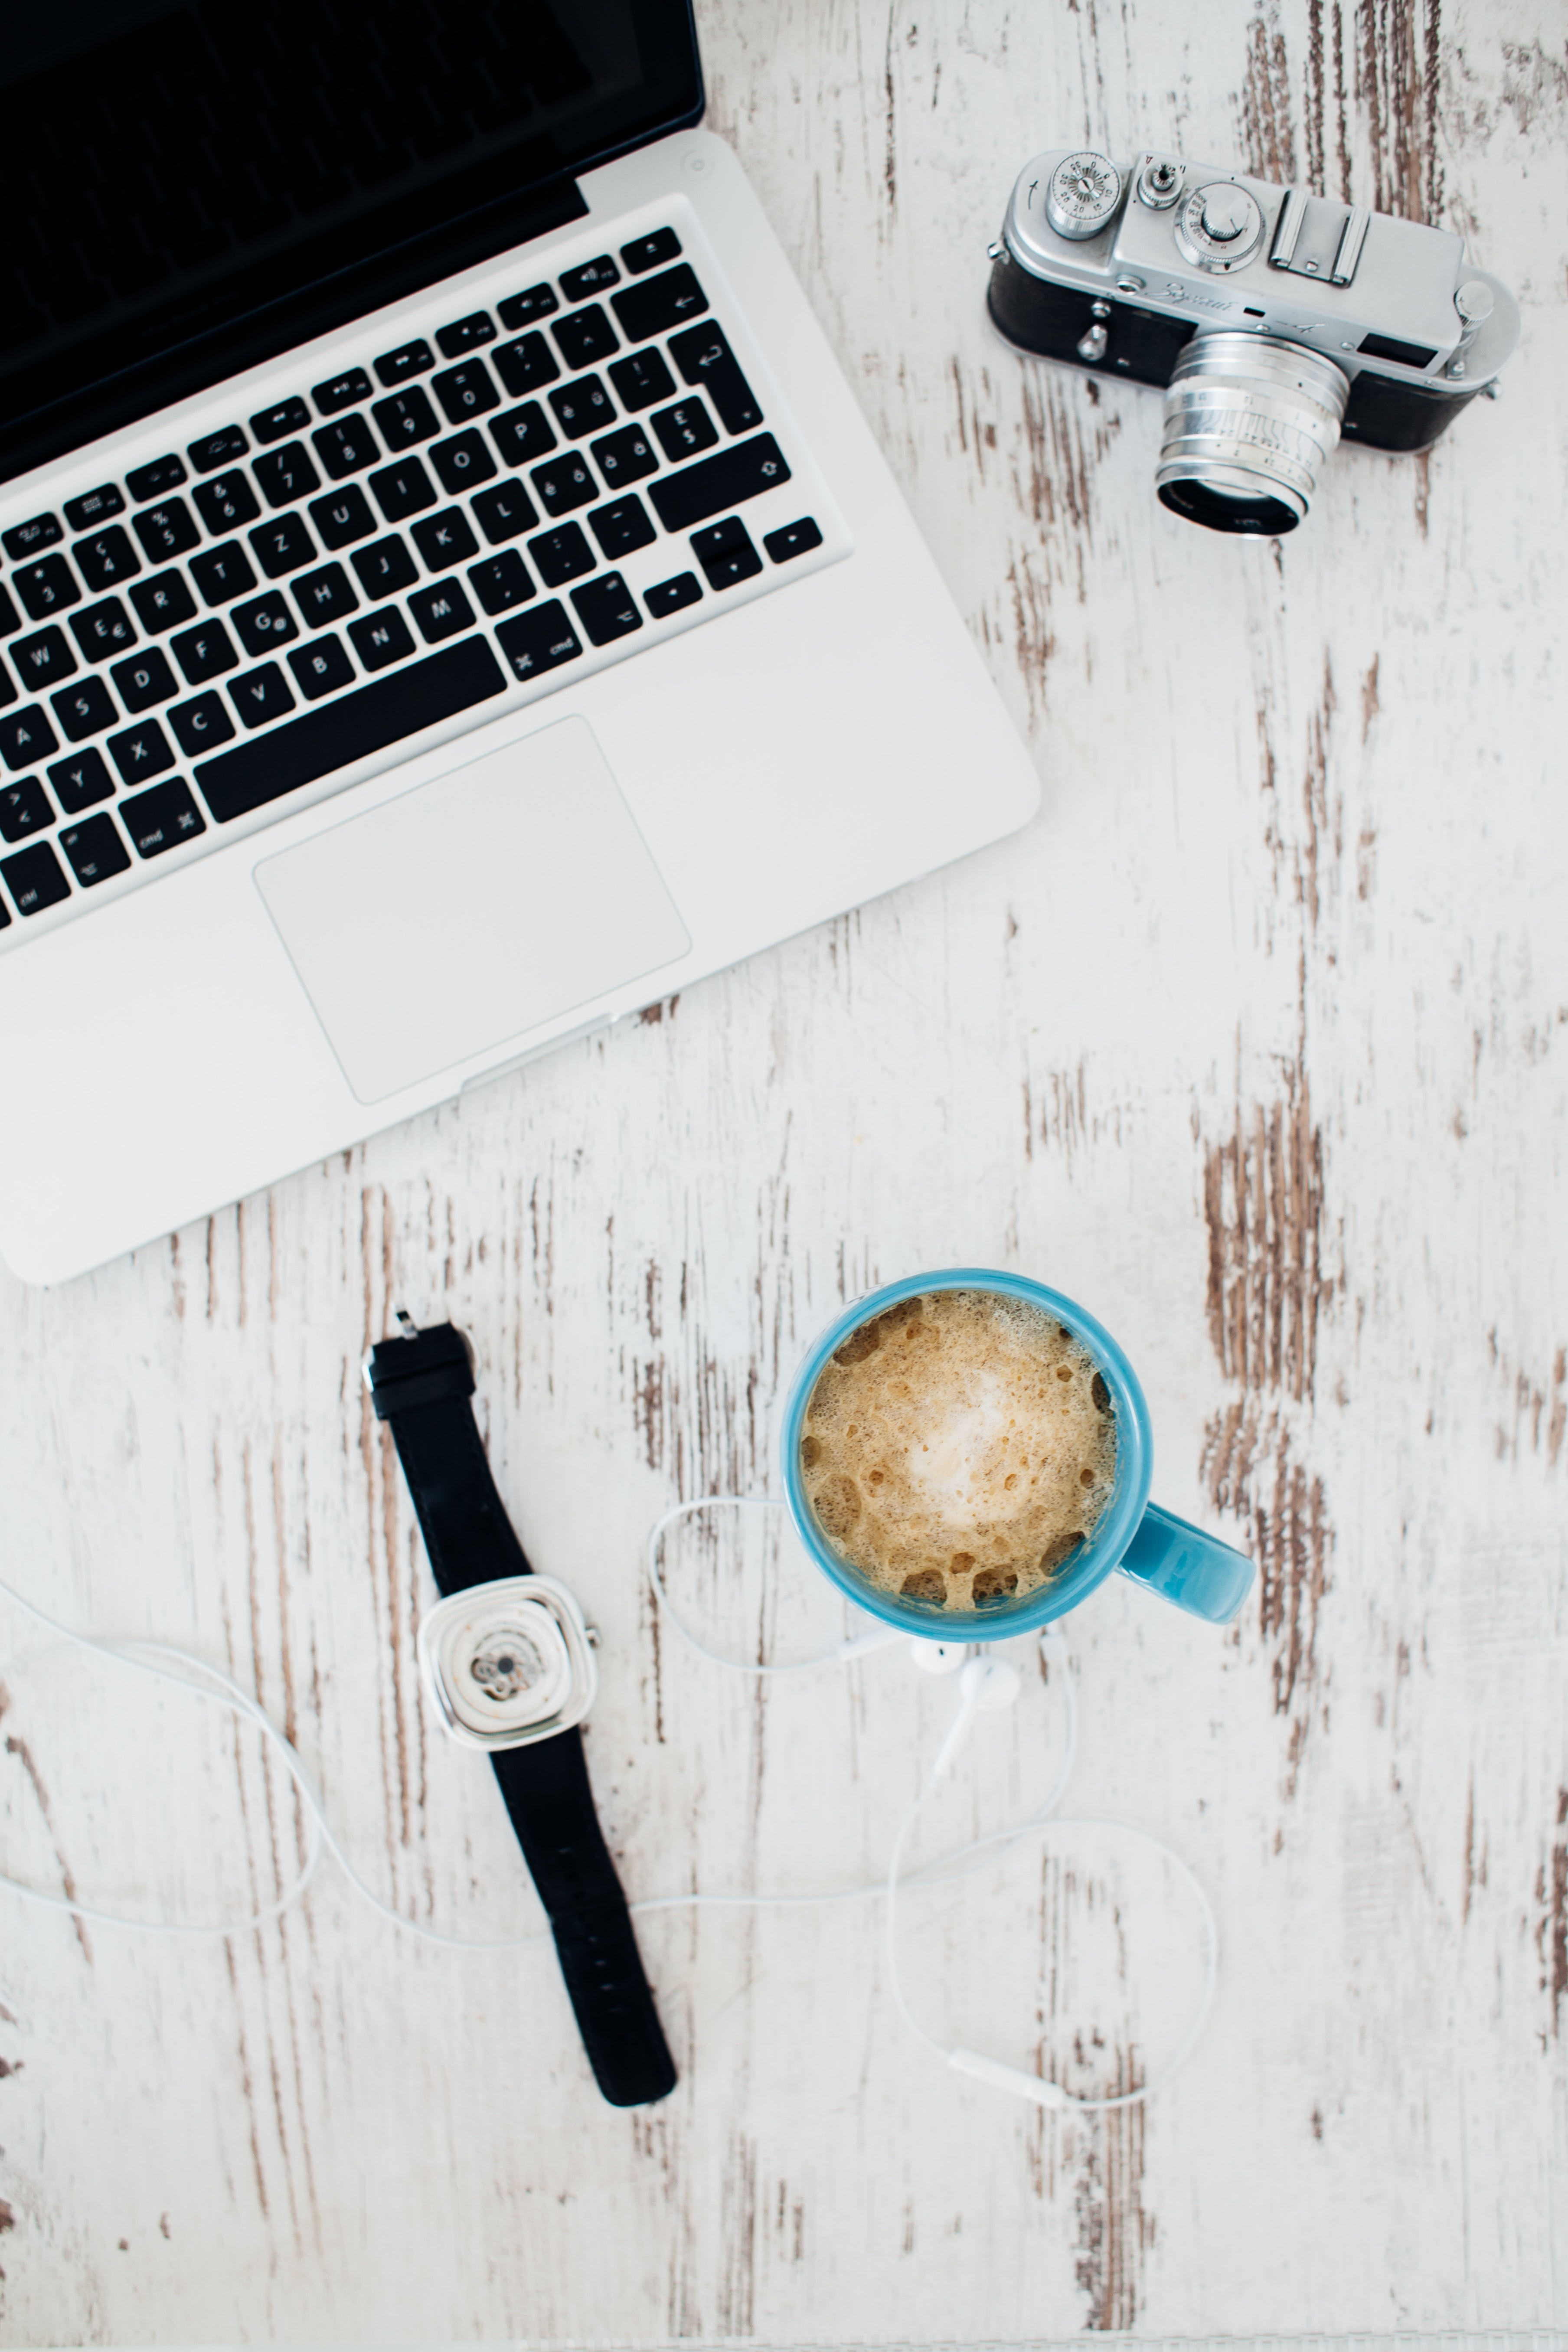 An overhead shot of a watch, a cup of coffee, a laptop and a camera on a wooden surface